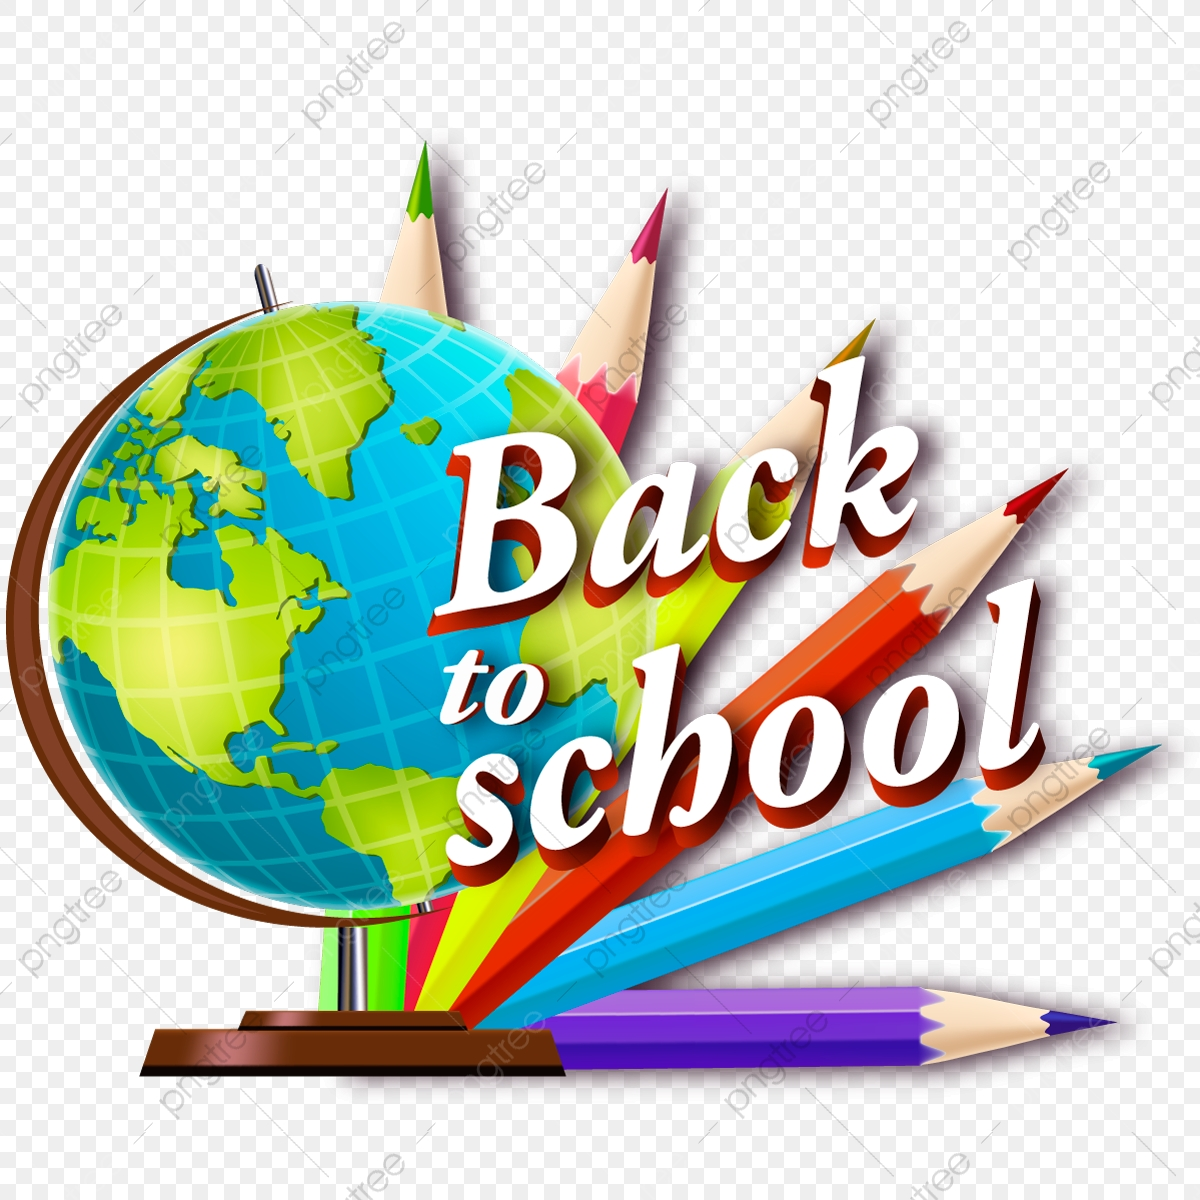 Back To School School Globe Png And Vector With Transparent Background For Free Download